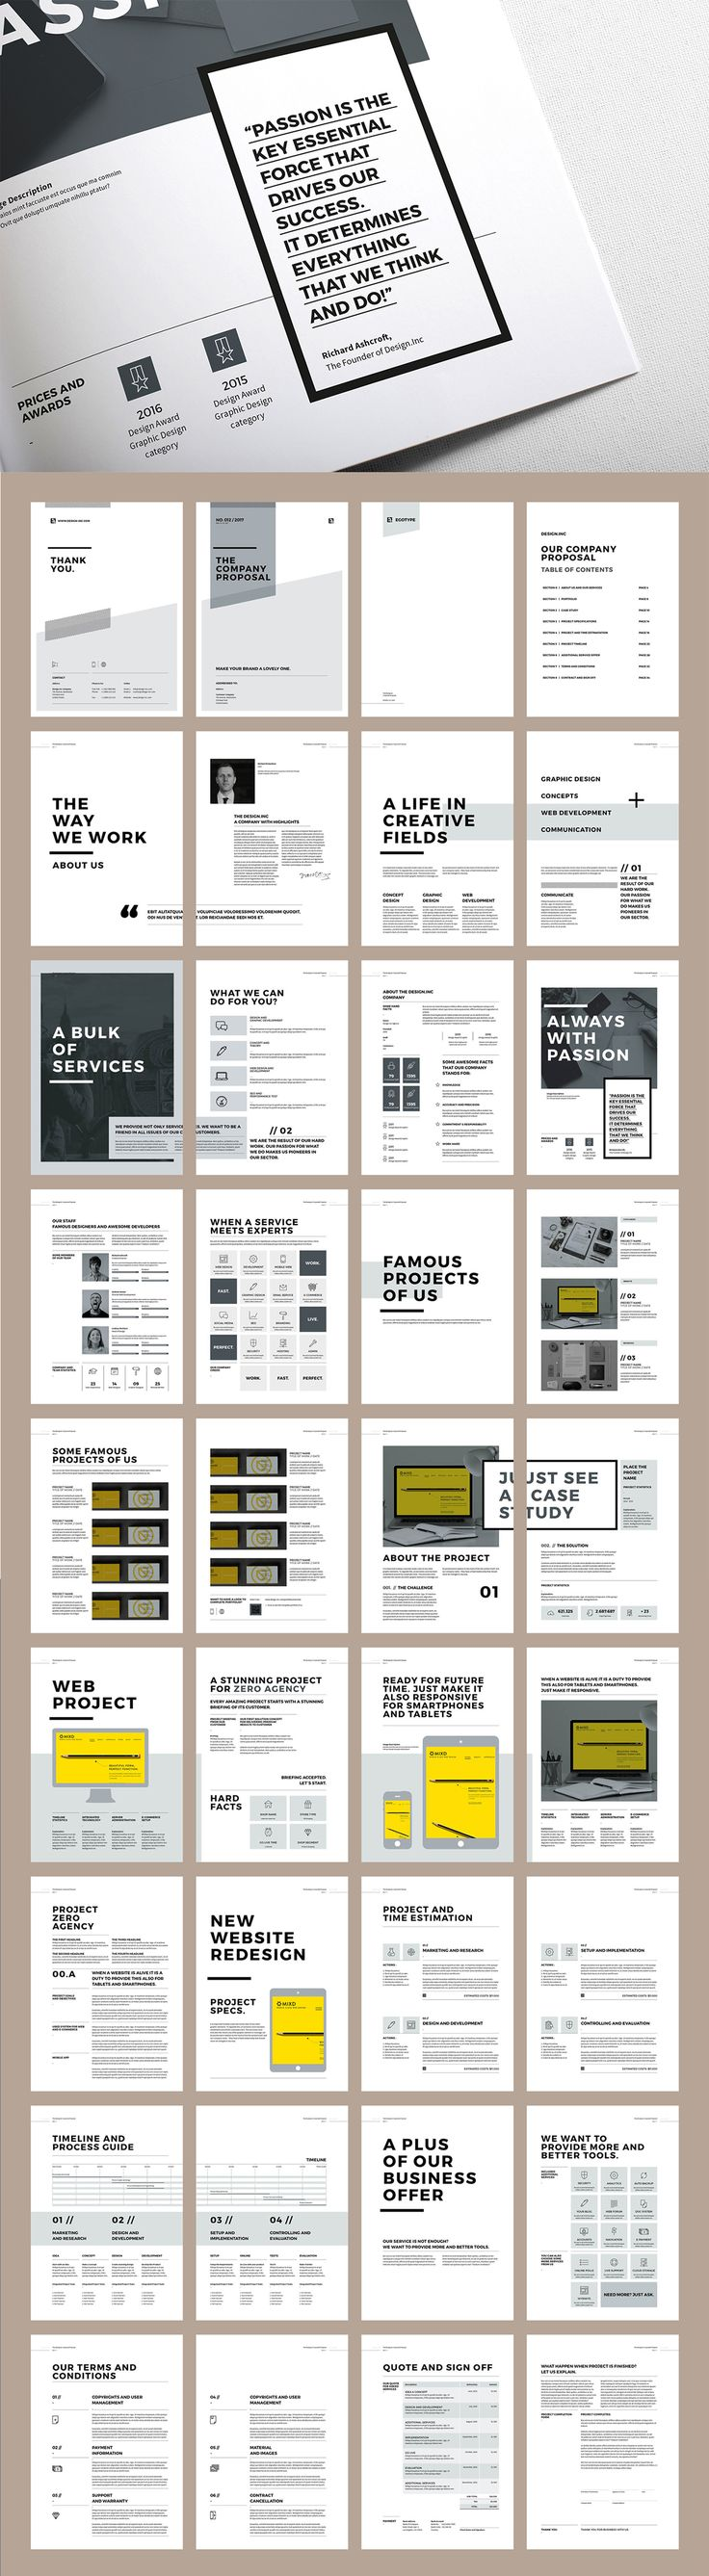 Proposal and Portfolio TemplateMinimal and Professional Proposal Brochure template for creative businesses, created in Adobe InDesign, Microsoft Word and Apple Pages in International DIN A4 and US Letter formatThis Proposal Template features: A4 …                                                                                                                                                      More